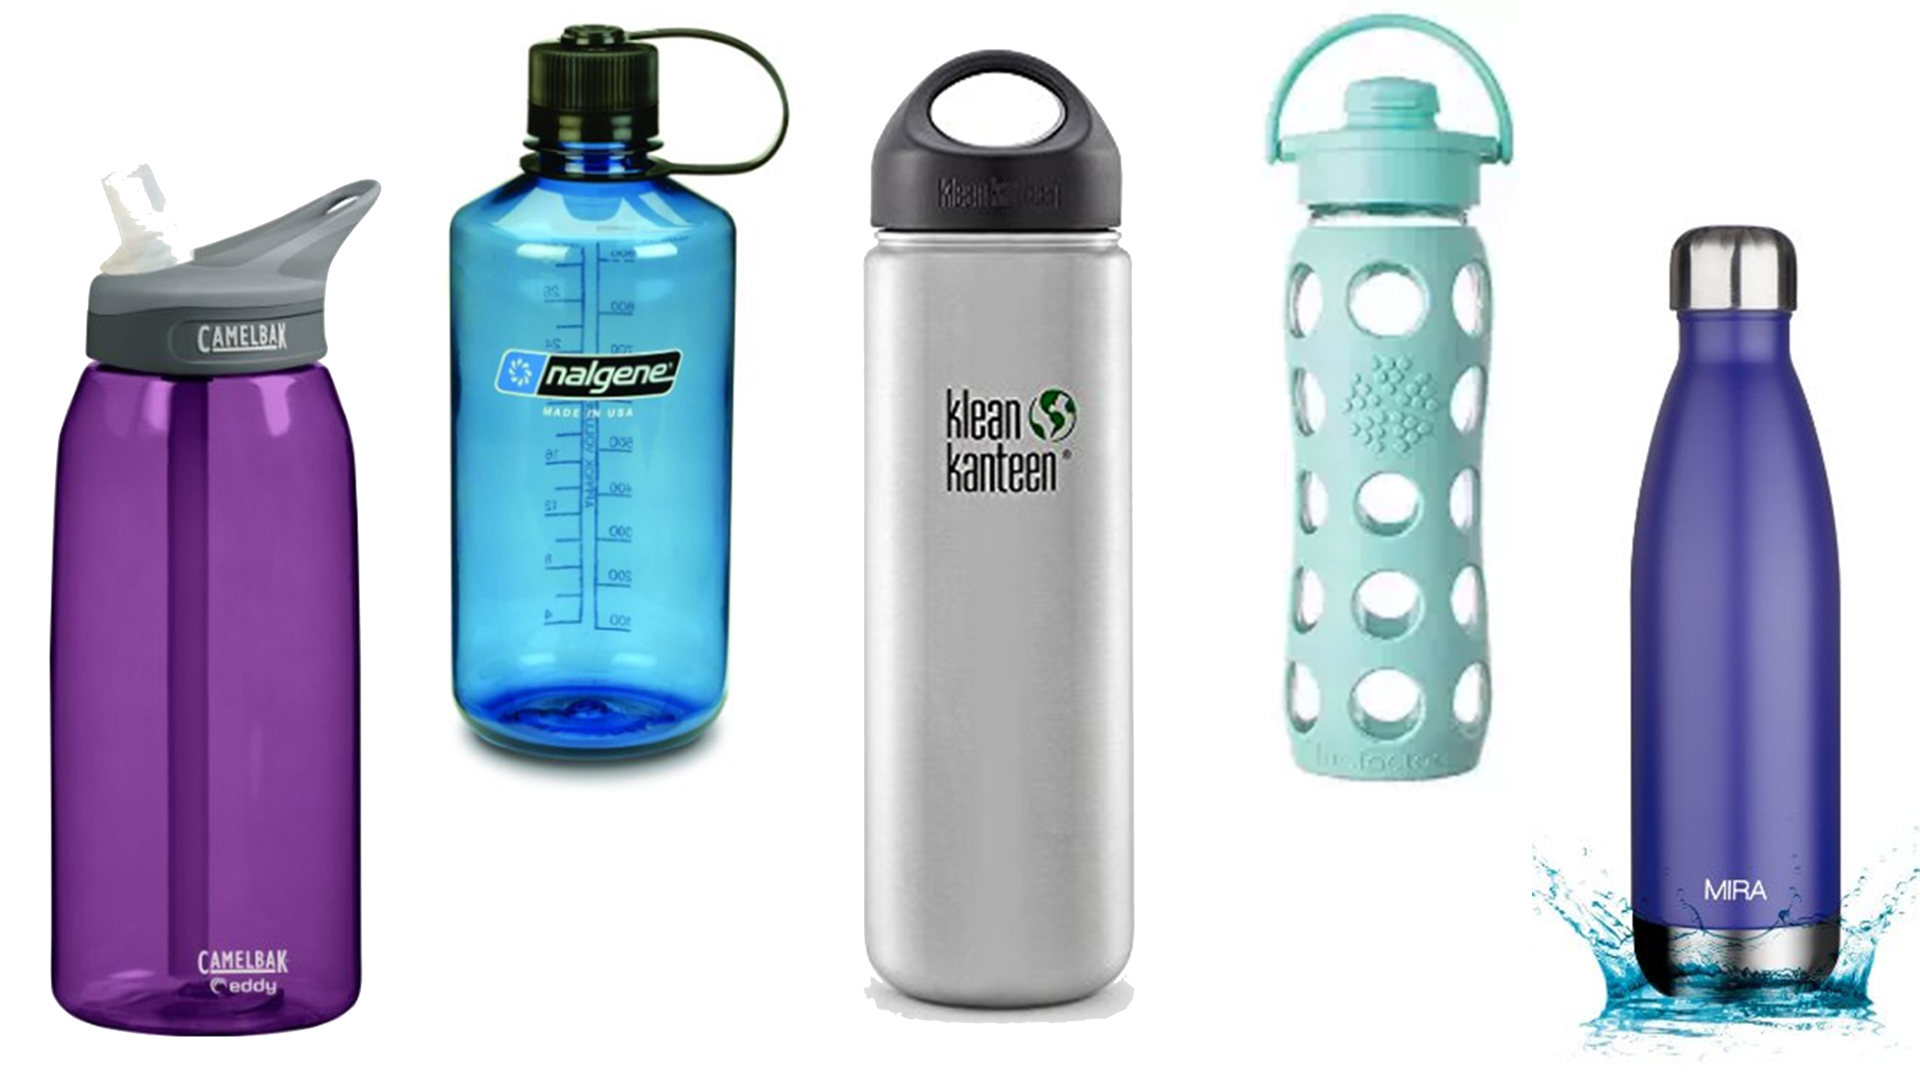 How to clean and sanitize water bottles